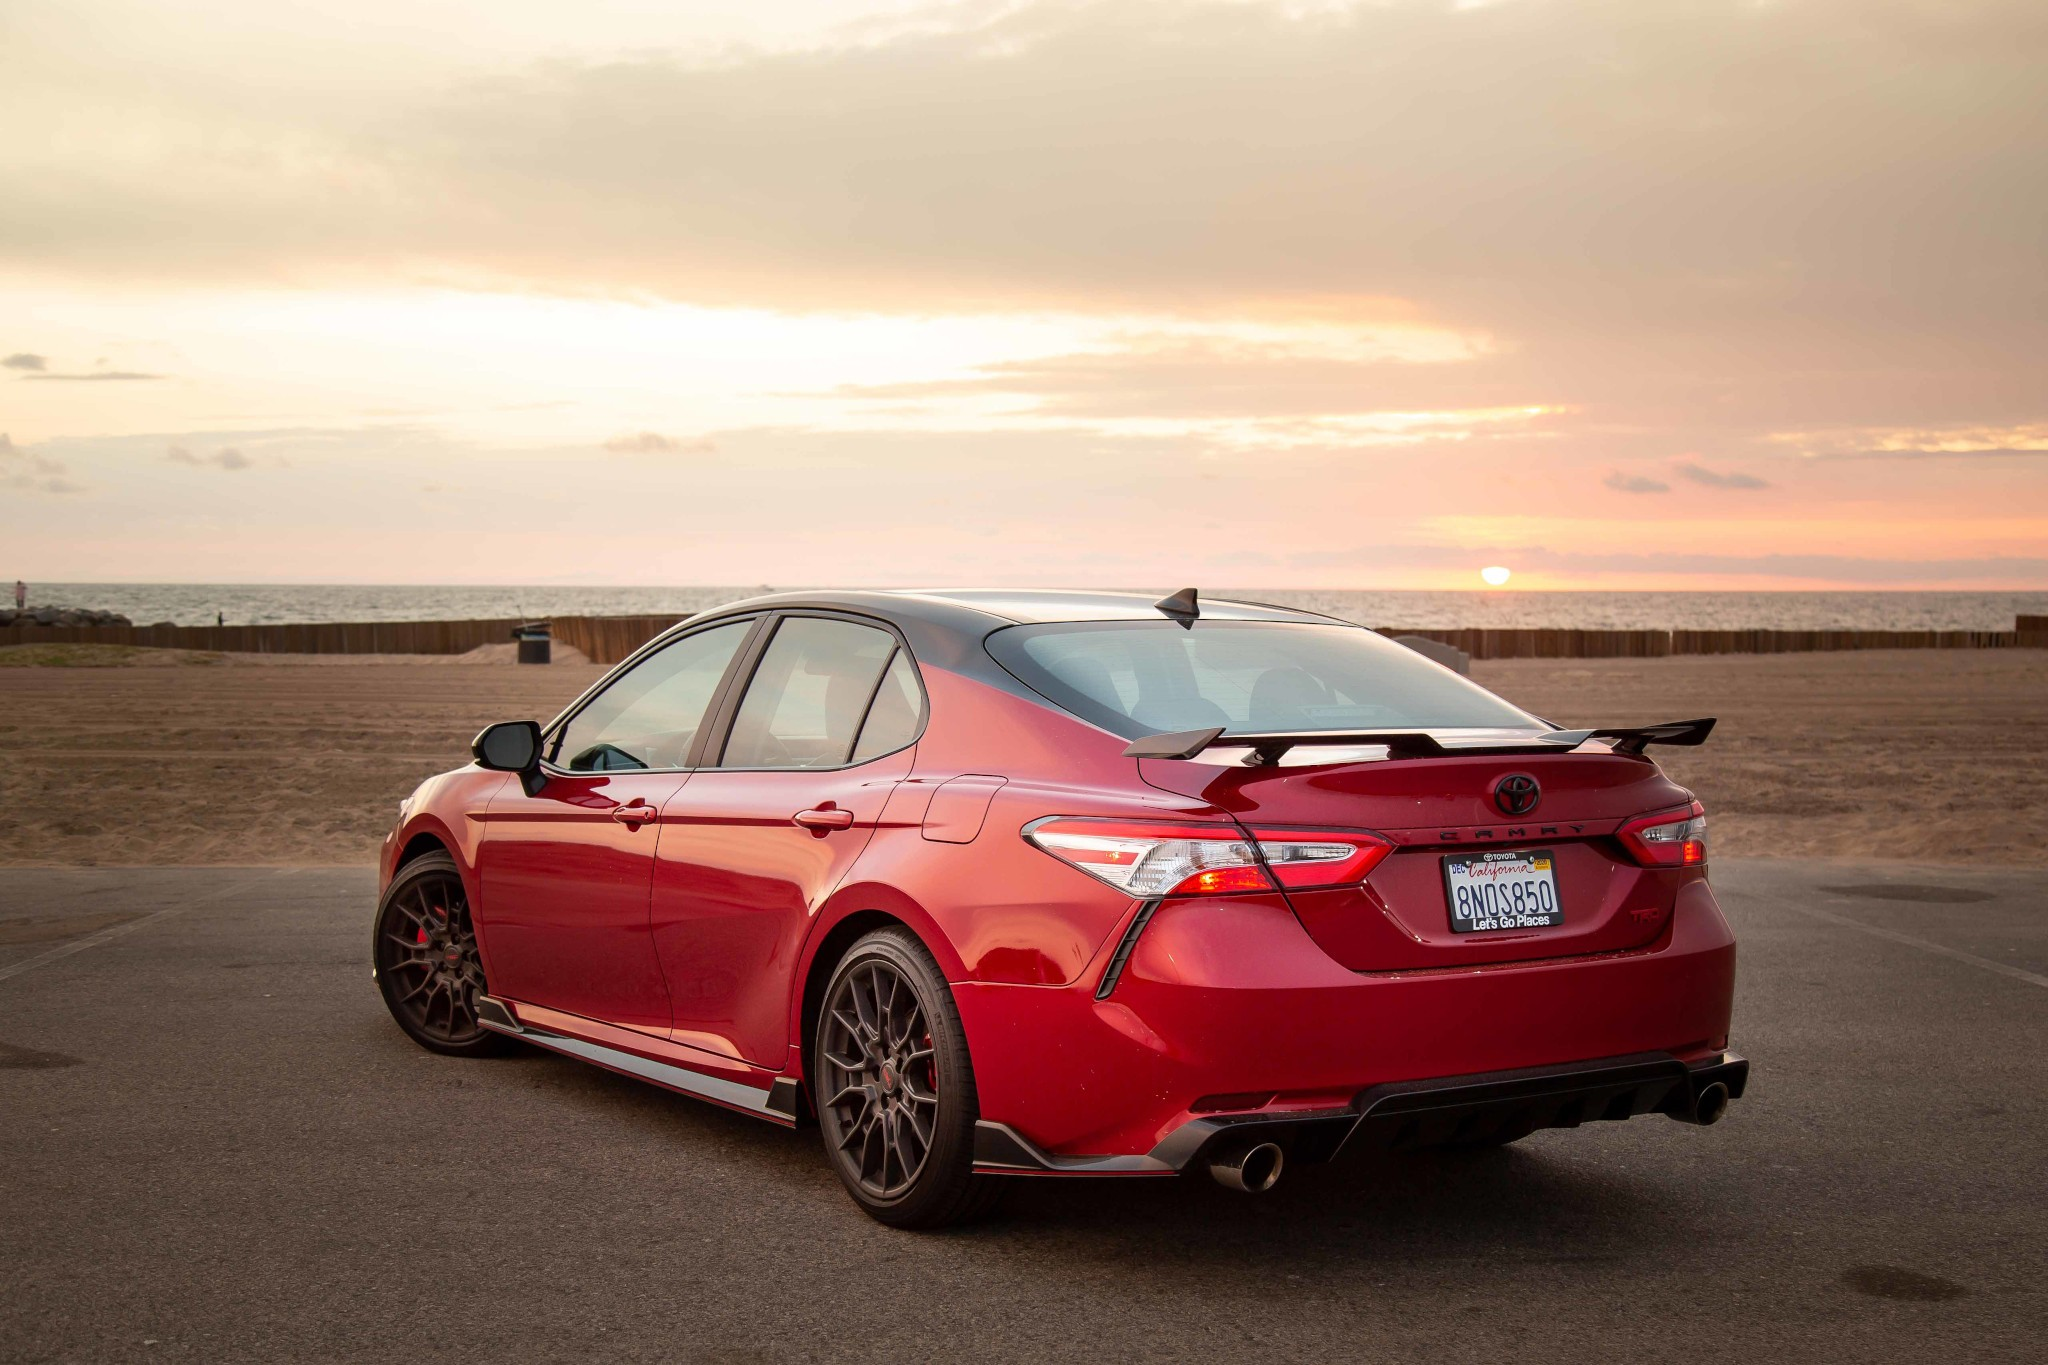 toyota-camry-trd-2020-04-angle--exterior--rear--red.jpg